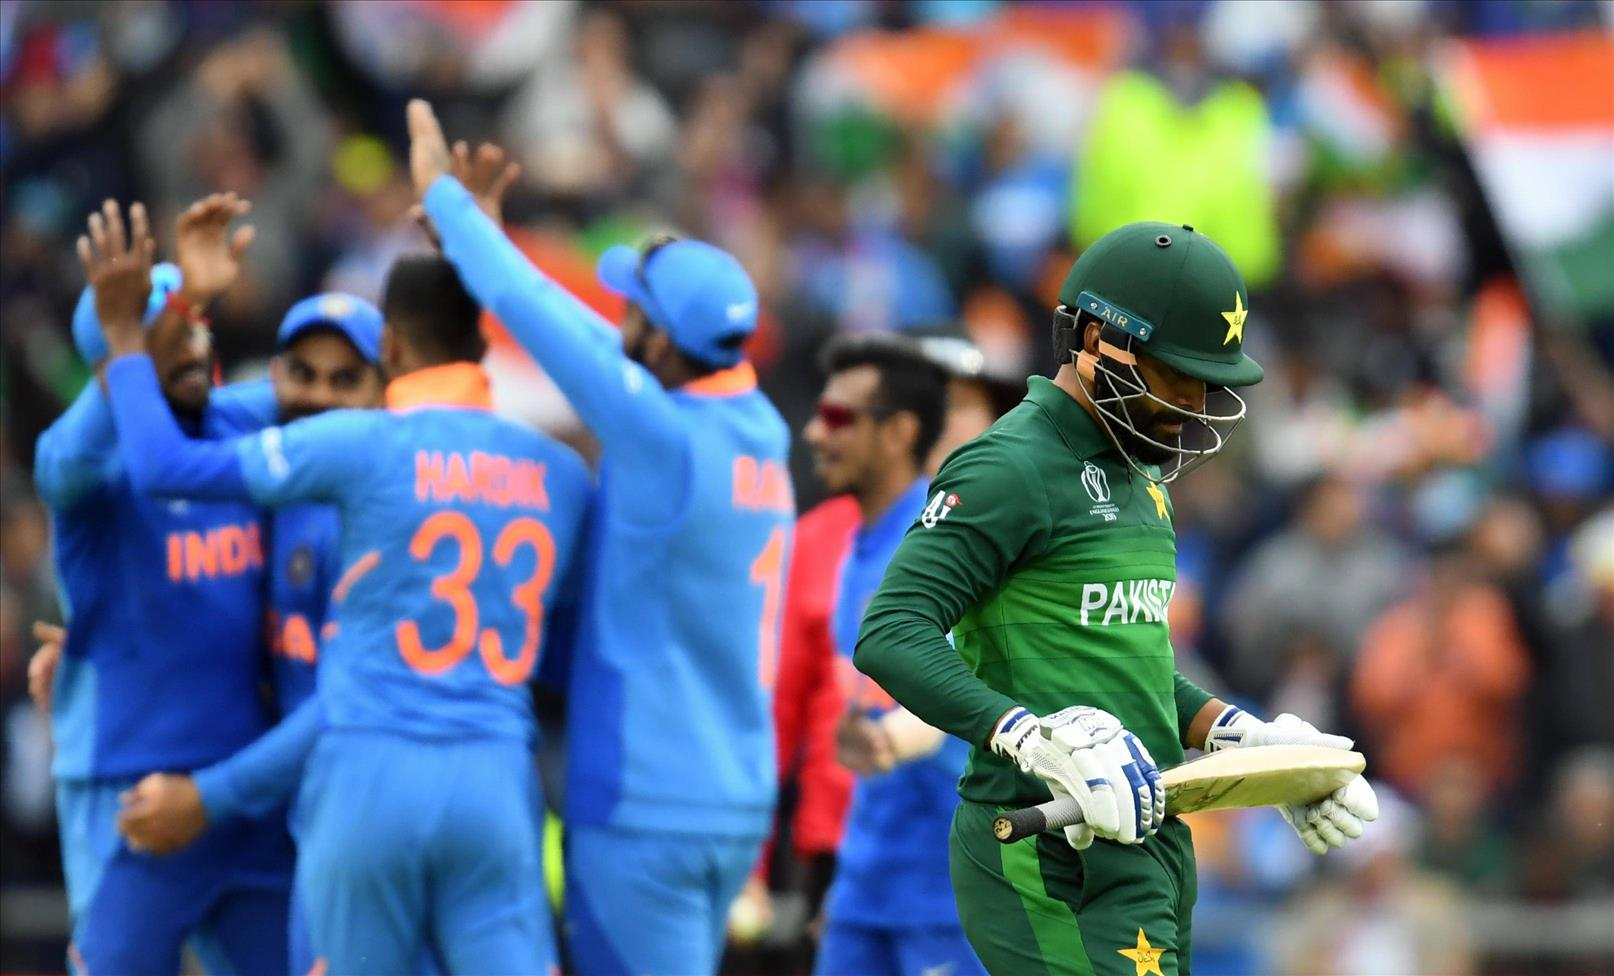 T20 World Cup: When, where to watch India-Pakistan match